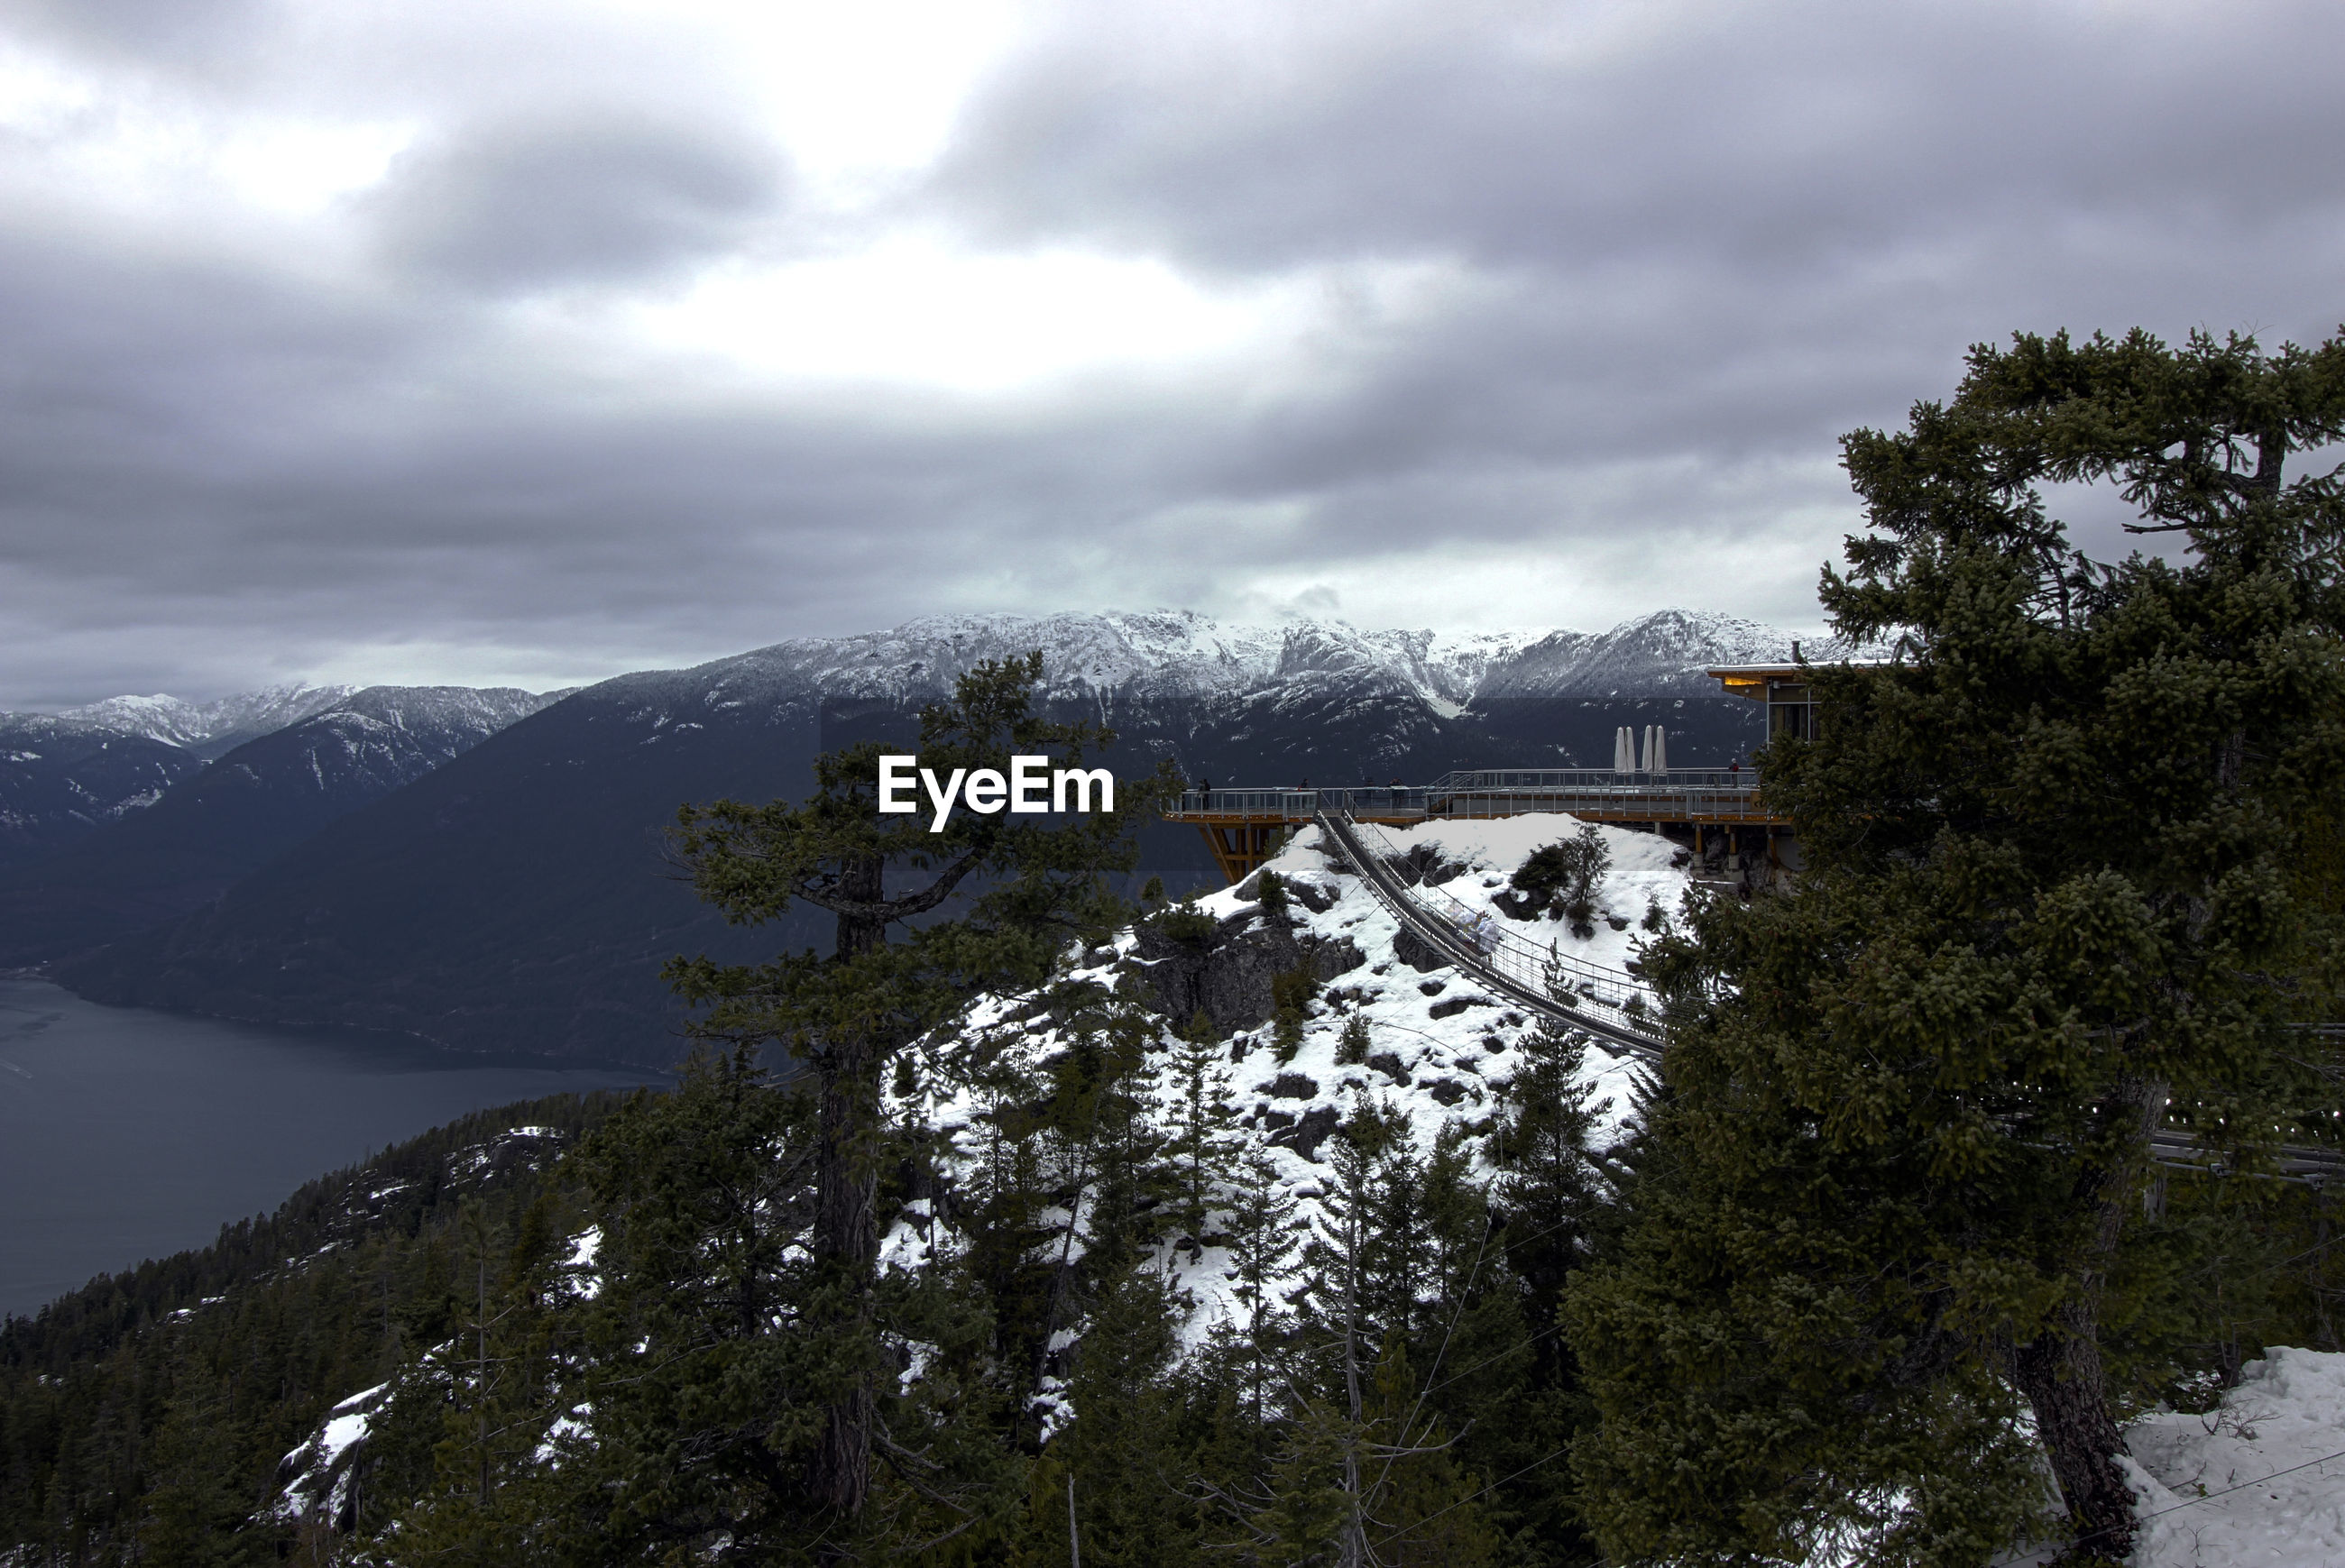 VIEW OF SNOWCAPPED MOUNTAIN AGAINST CLOUDY SKY